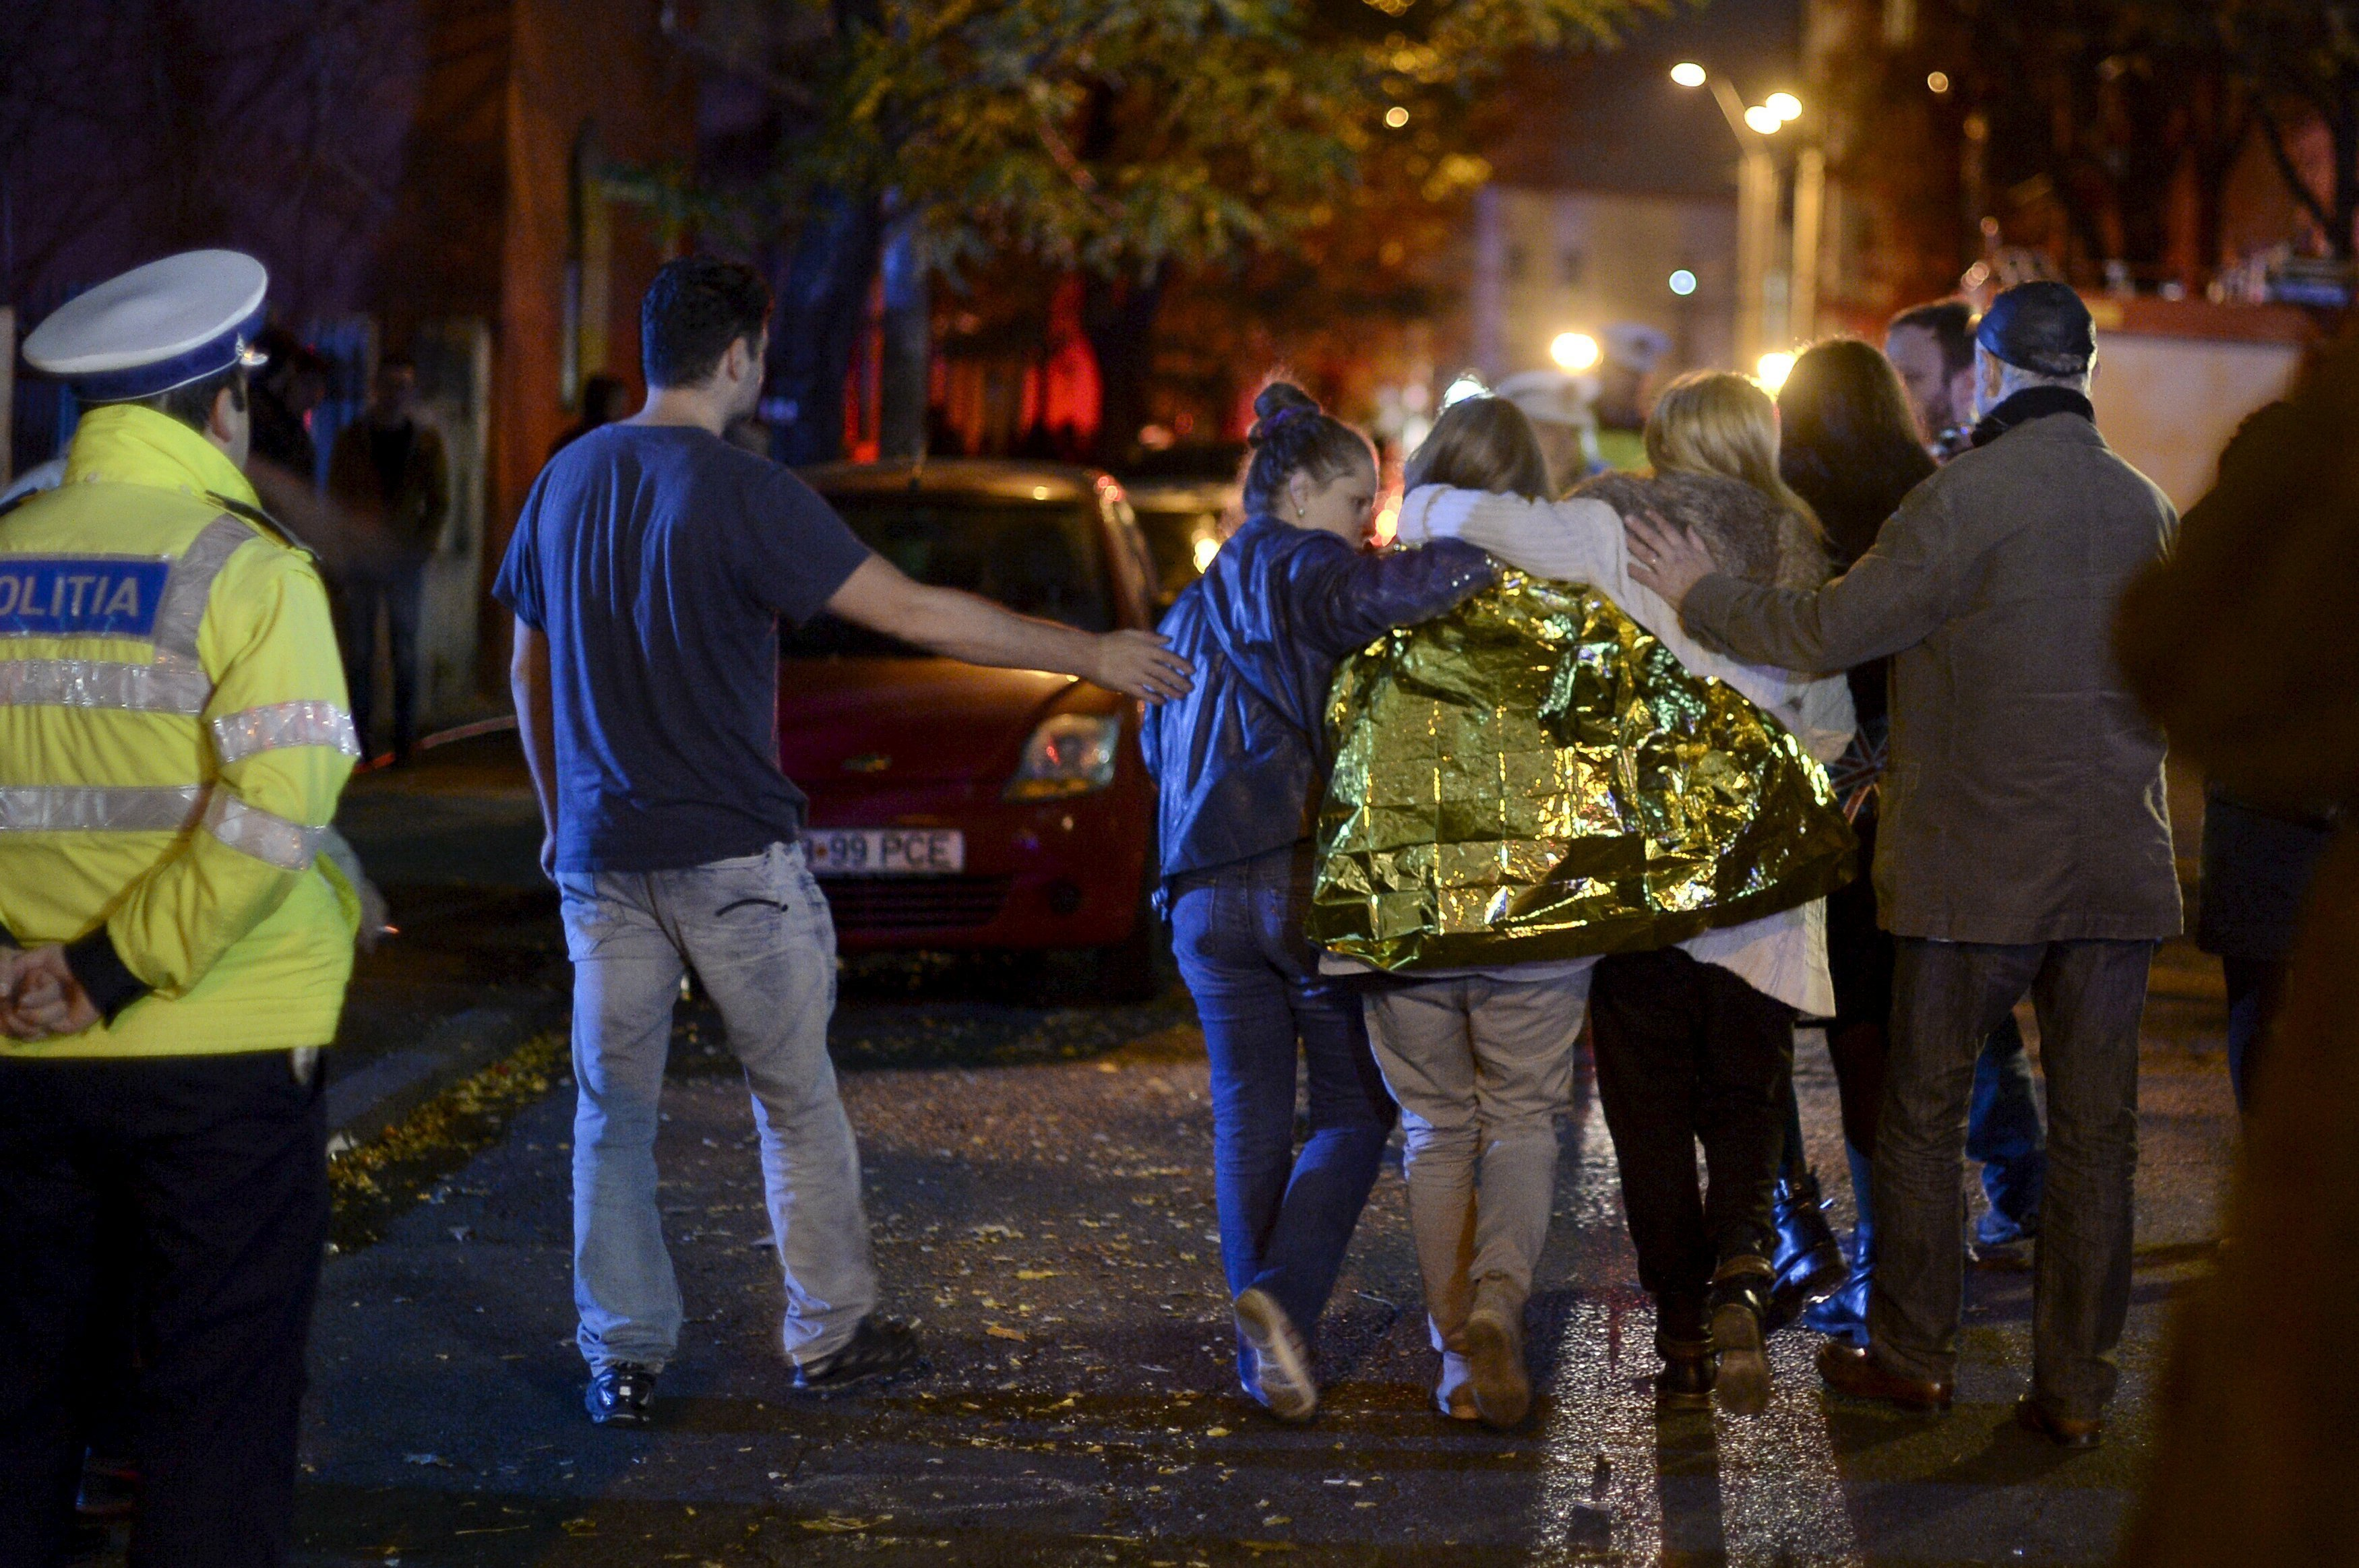 People walk outside a nightclub following an explosion in Bucharest, Romania October 31, 2015. Twenty five died in a nightclub blast and fire late on Friday and at least 88 people were admitted to hospital, government officials said.